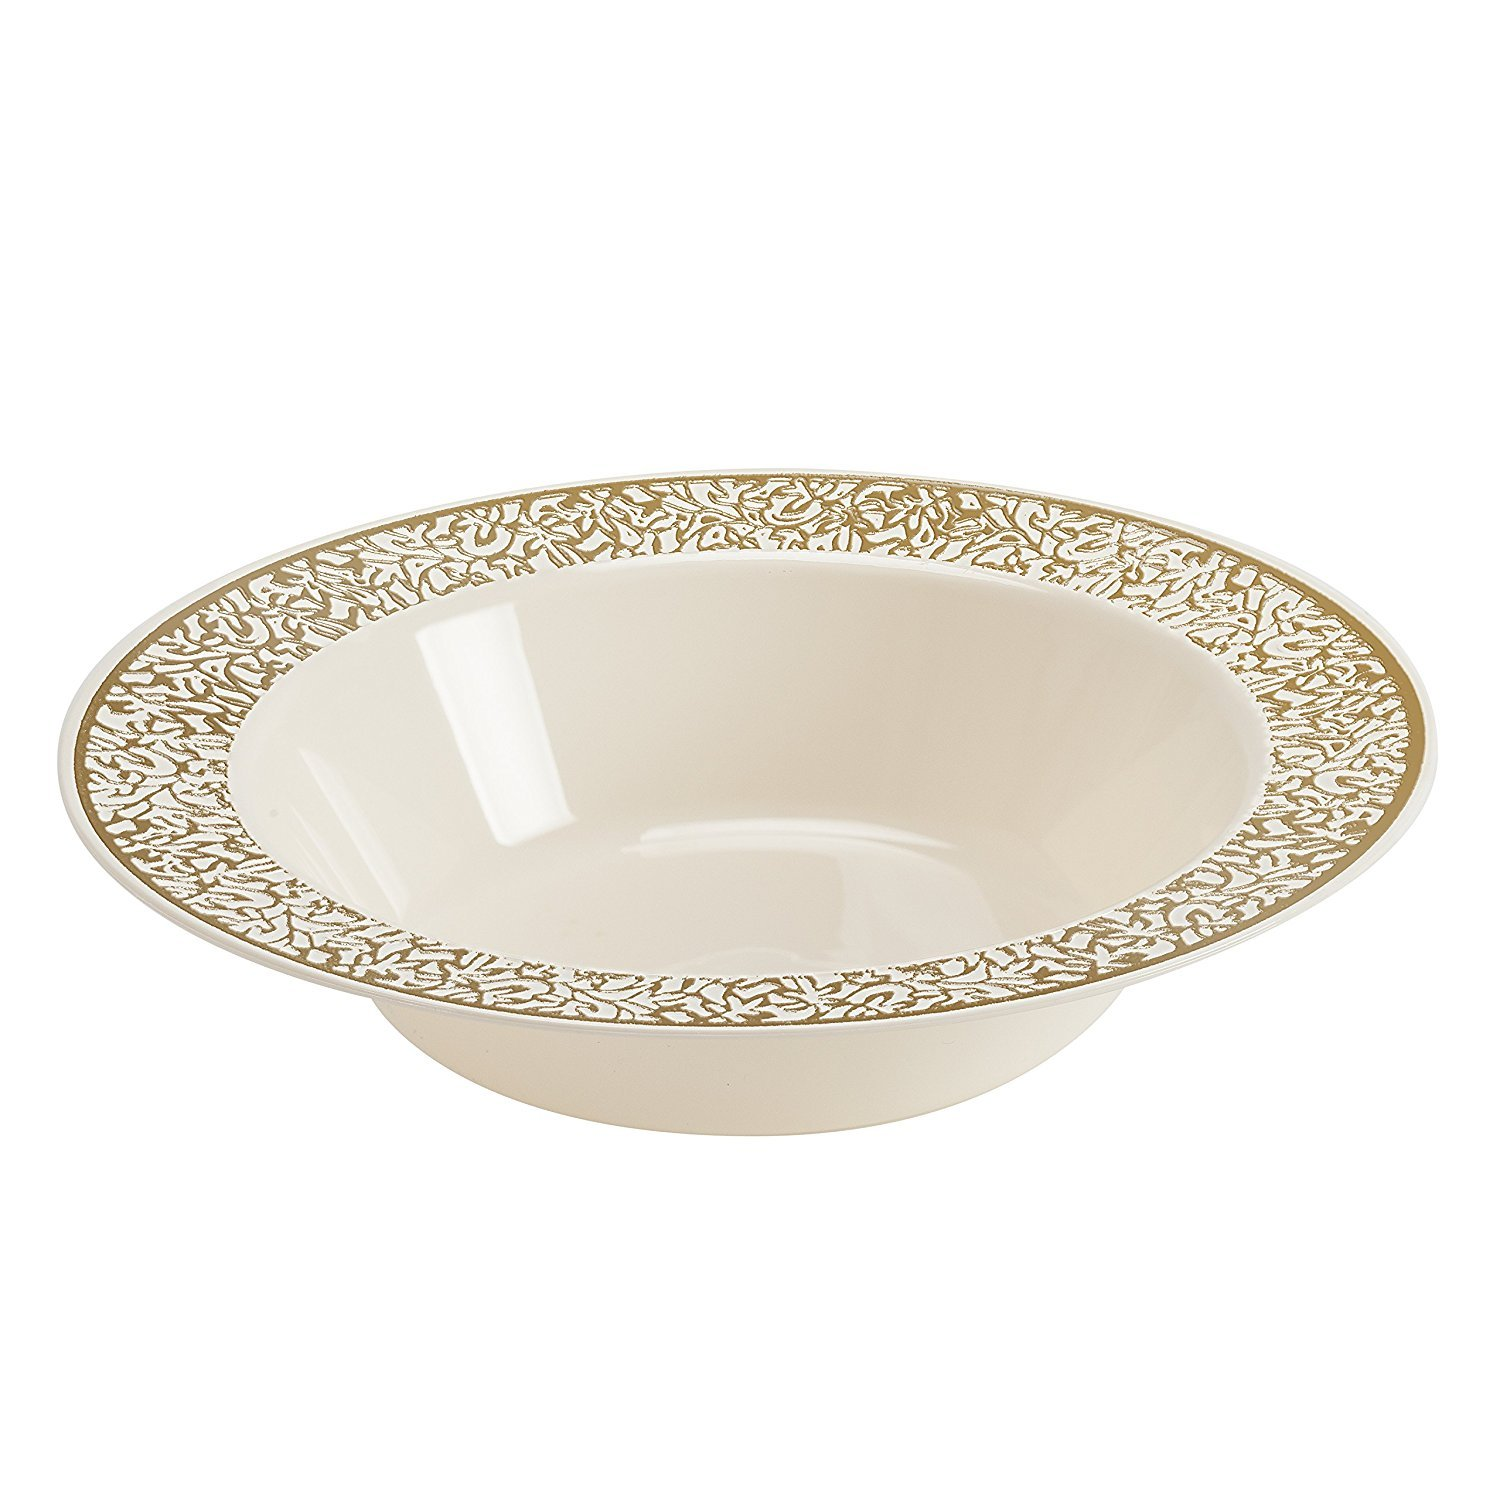 Disposable Plastic Bowls | Premium Quality Ivory & Gold Dinnerware With Golden Lace Rim | Excellent for Weddings, Baby & Bridal Showers, Parties & More | Heavy Duty 12 Ounce Bowl | 40 Count by PARTY BARGAINS